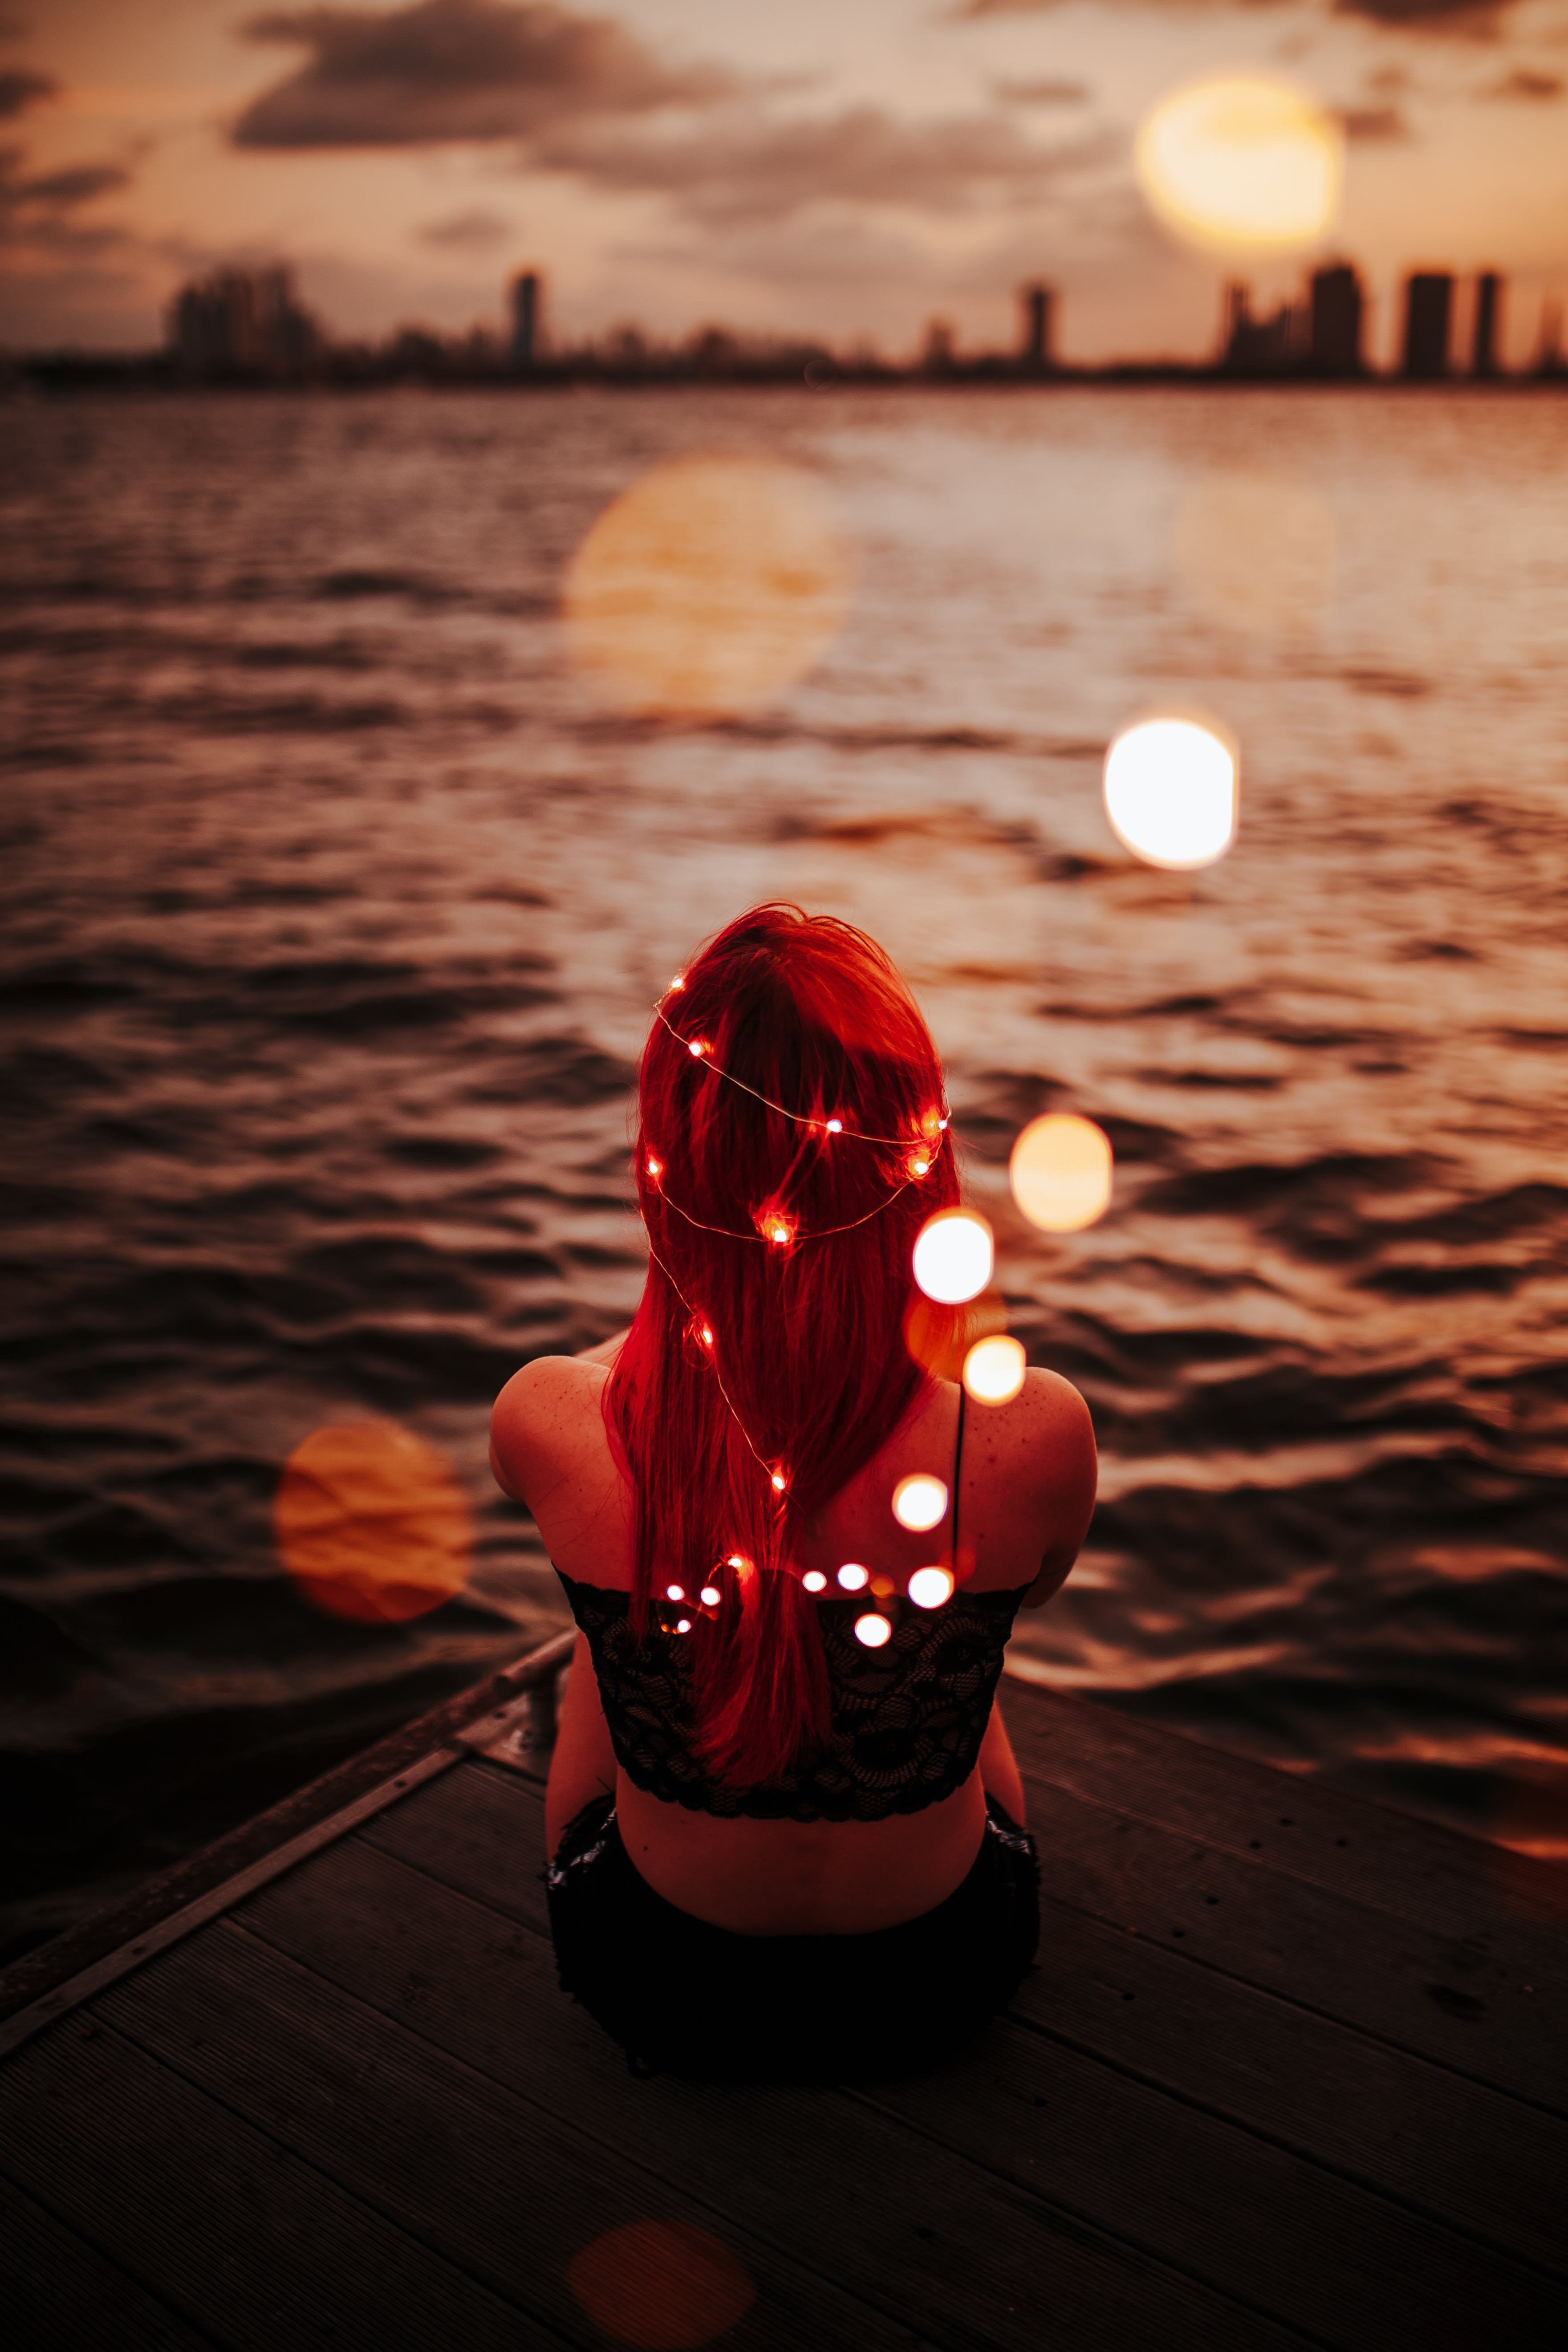 Woman With String Lights On Her Body